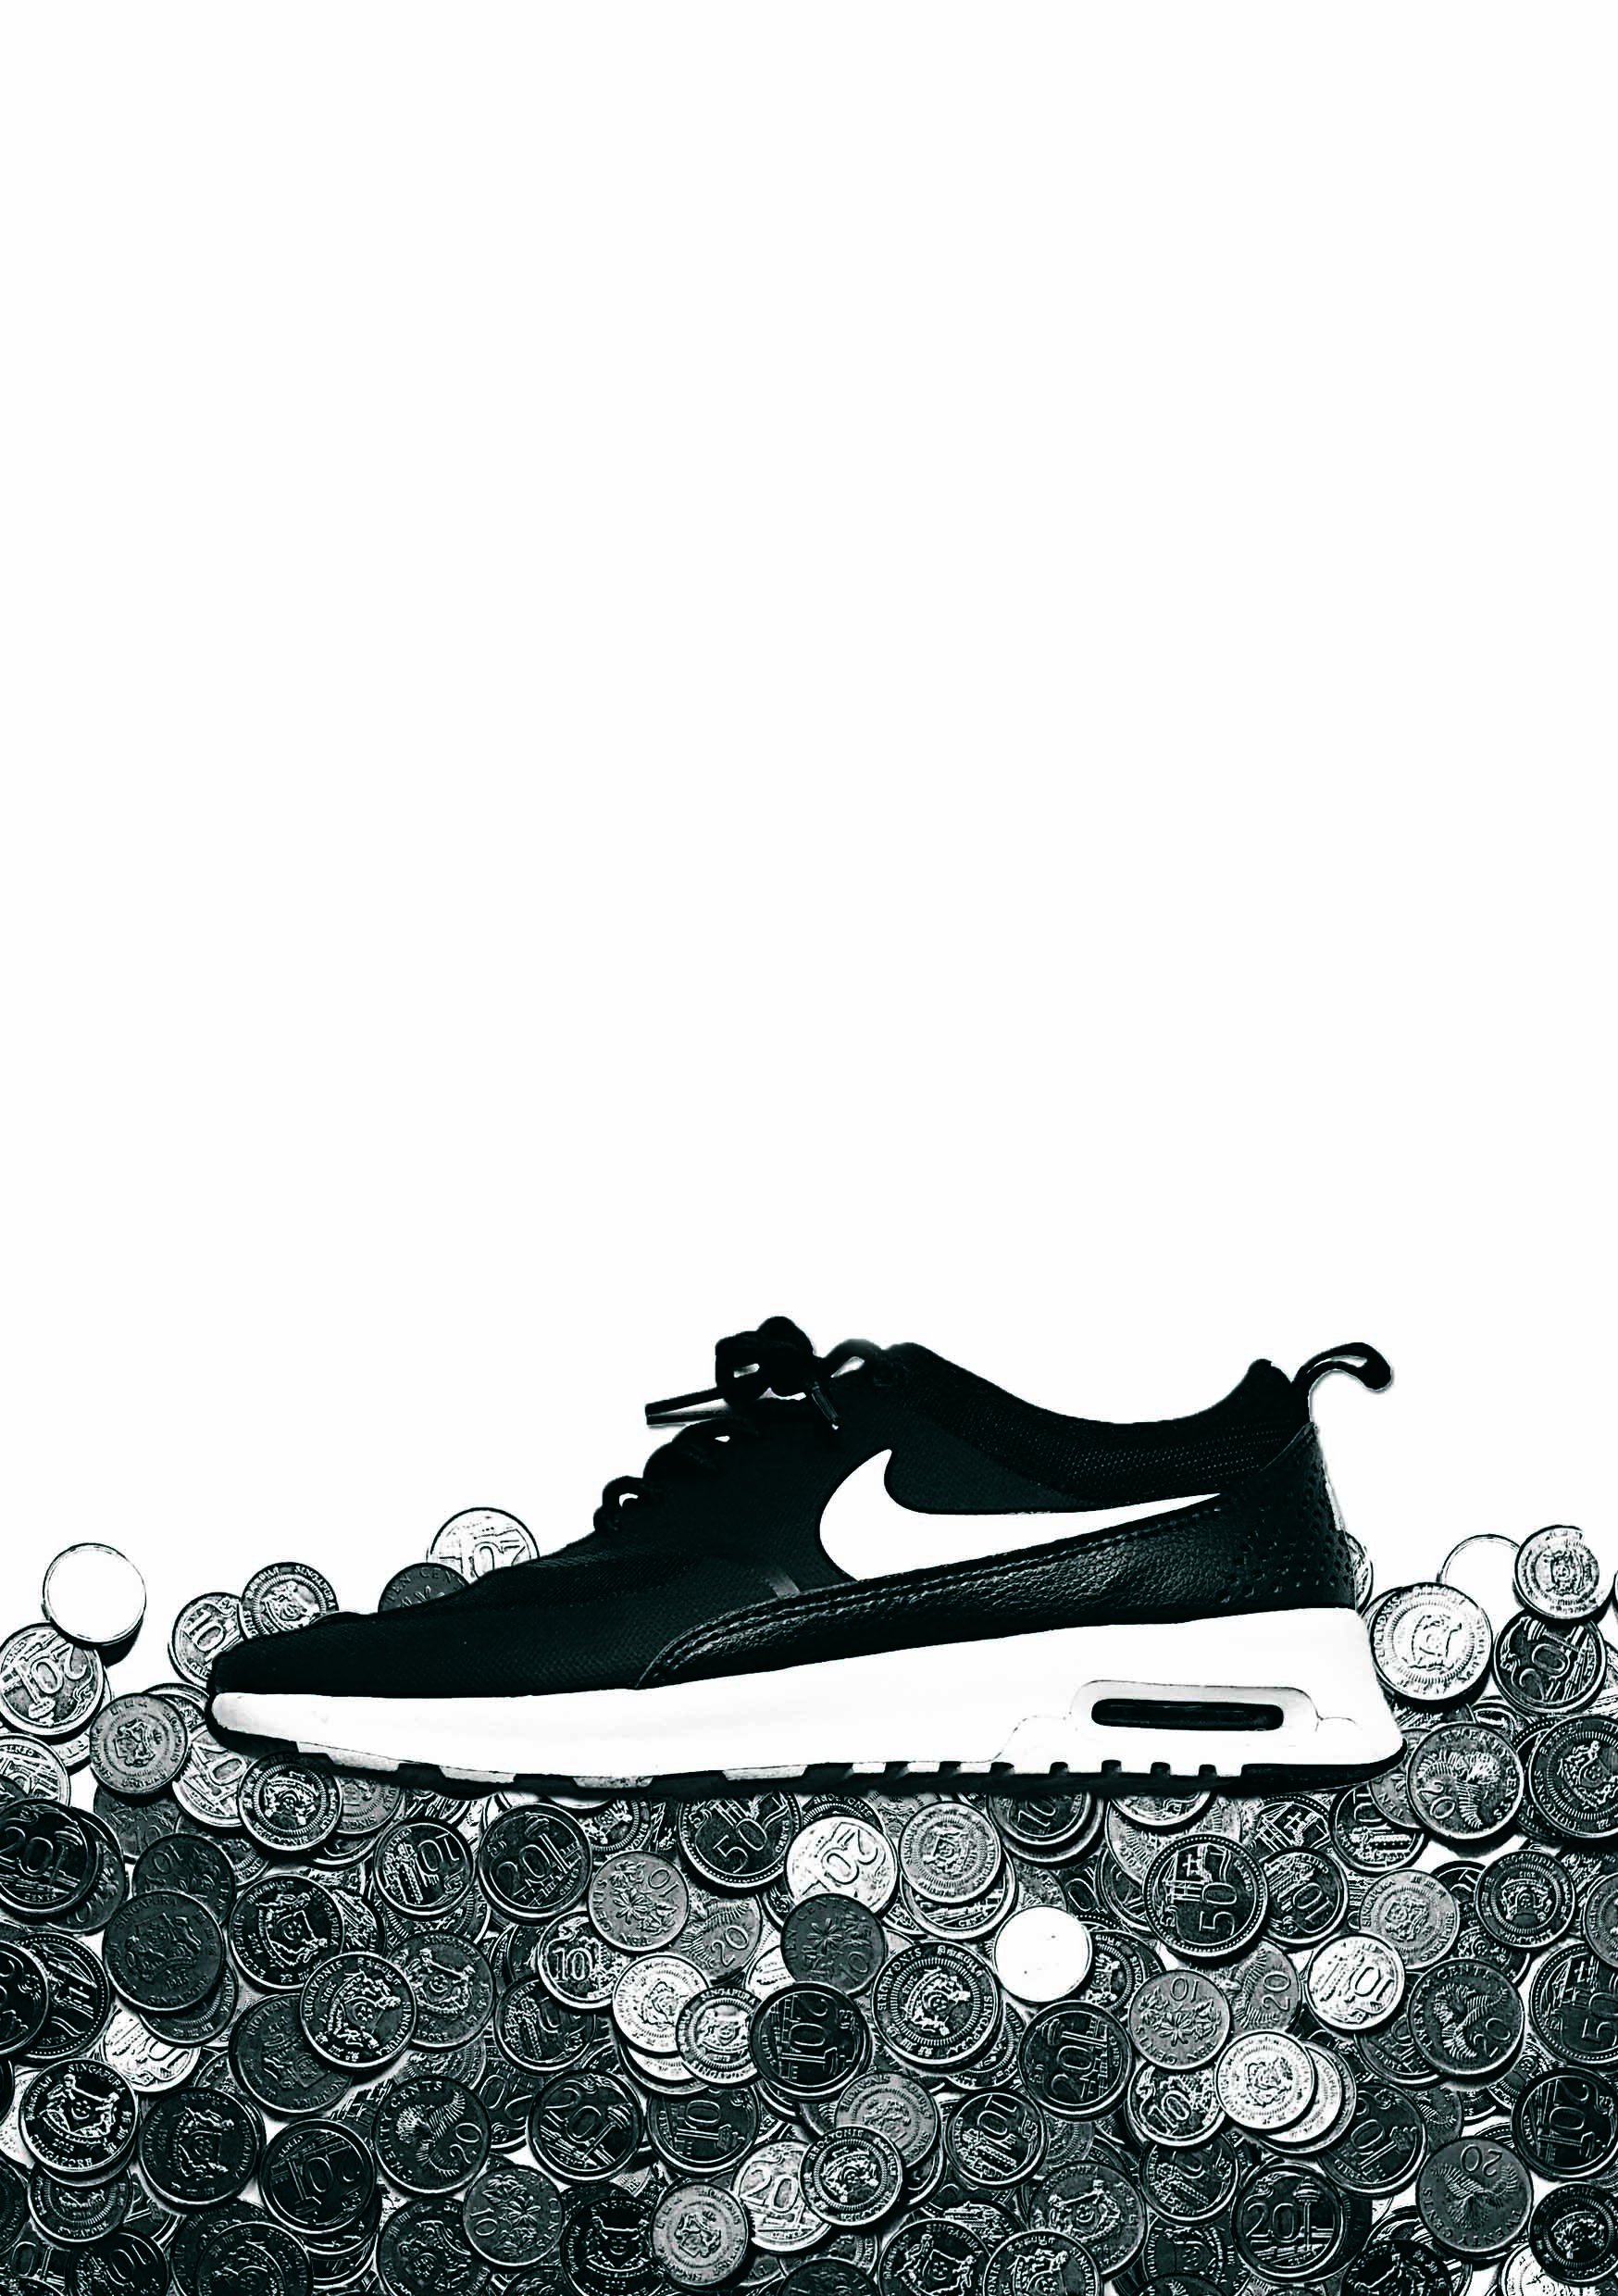 essays on nike sweatshops Case study: nike: the sweatshop debate 1) should nike be held responsible for working condition in factories that it does not own, but where sub.